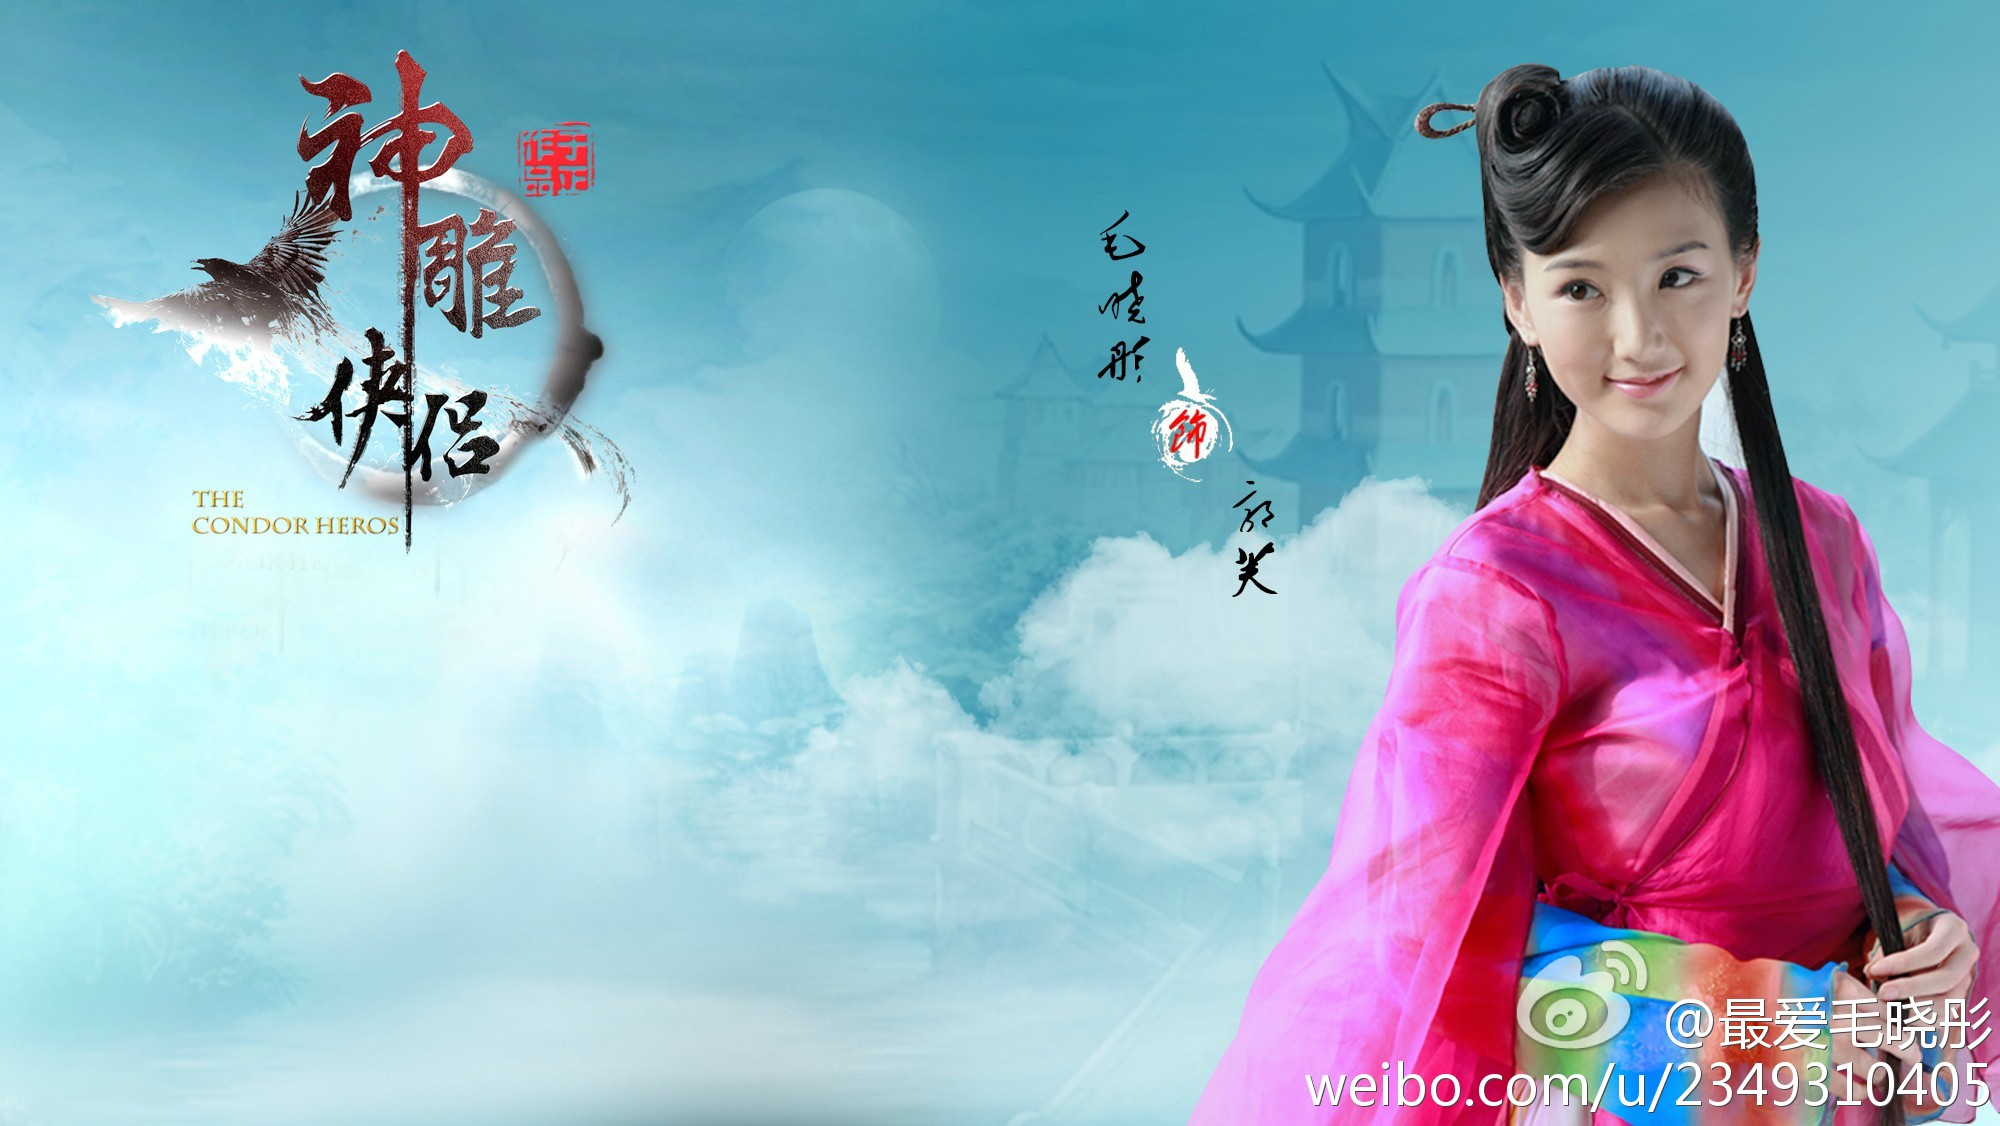 Thread: The Romance of the Condor Heroes 《神雕侠侣》 - Chen ...